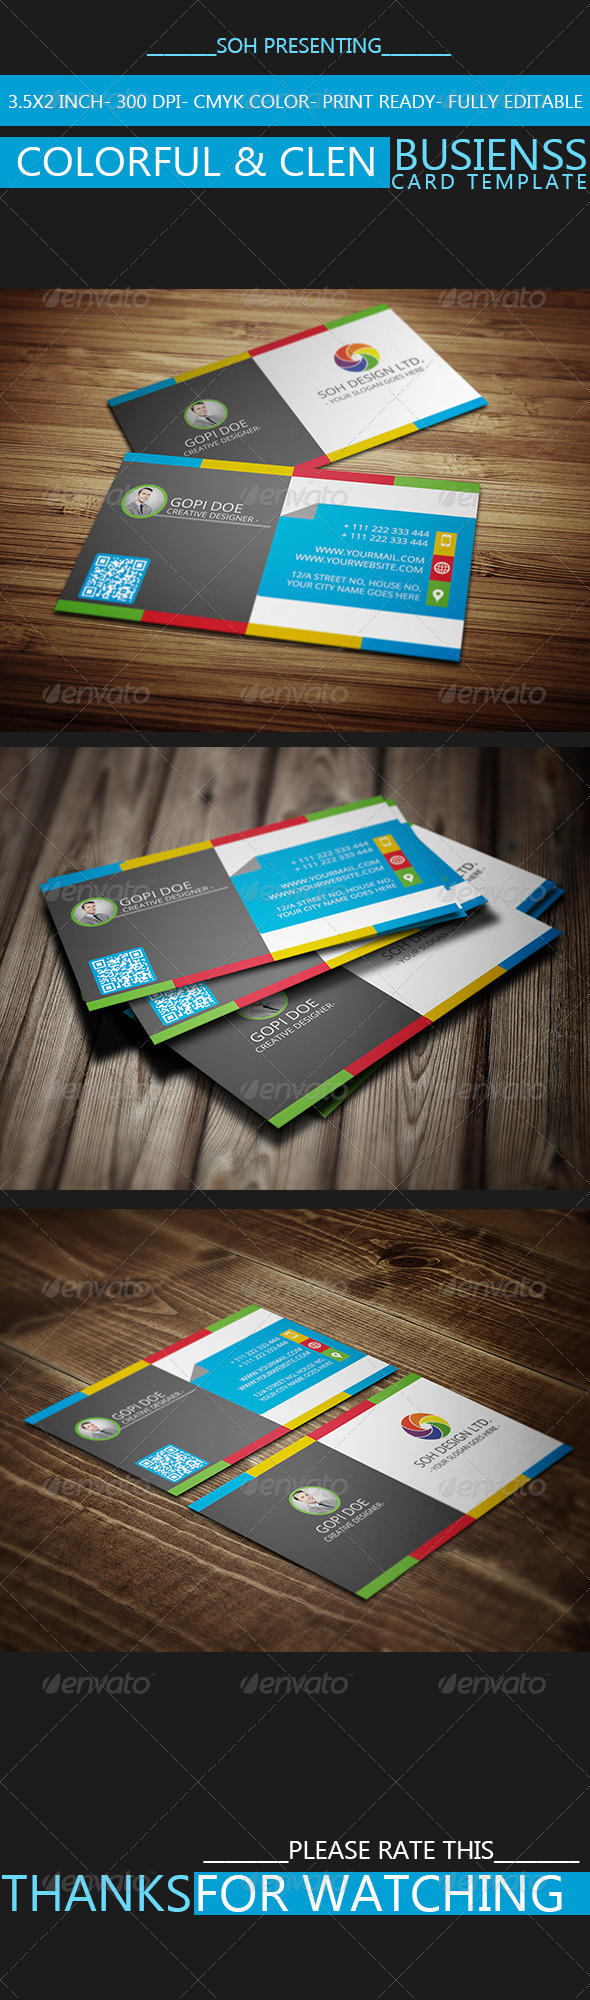 GraphicRiver Colorful & Clen Business Card Template 8759782